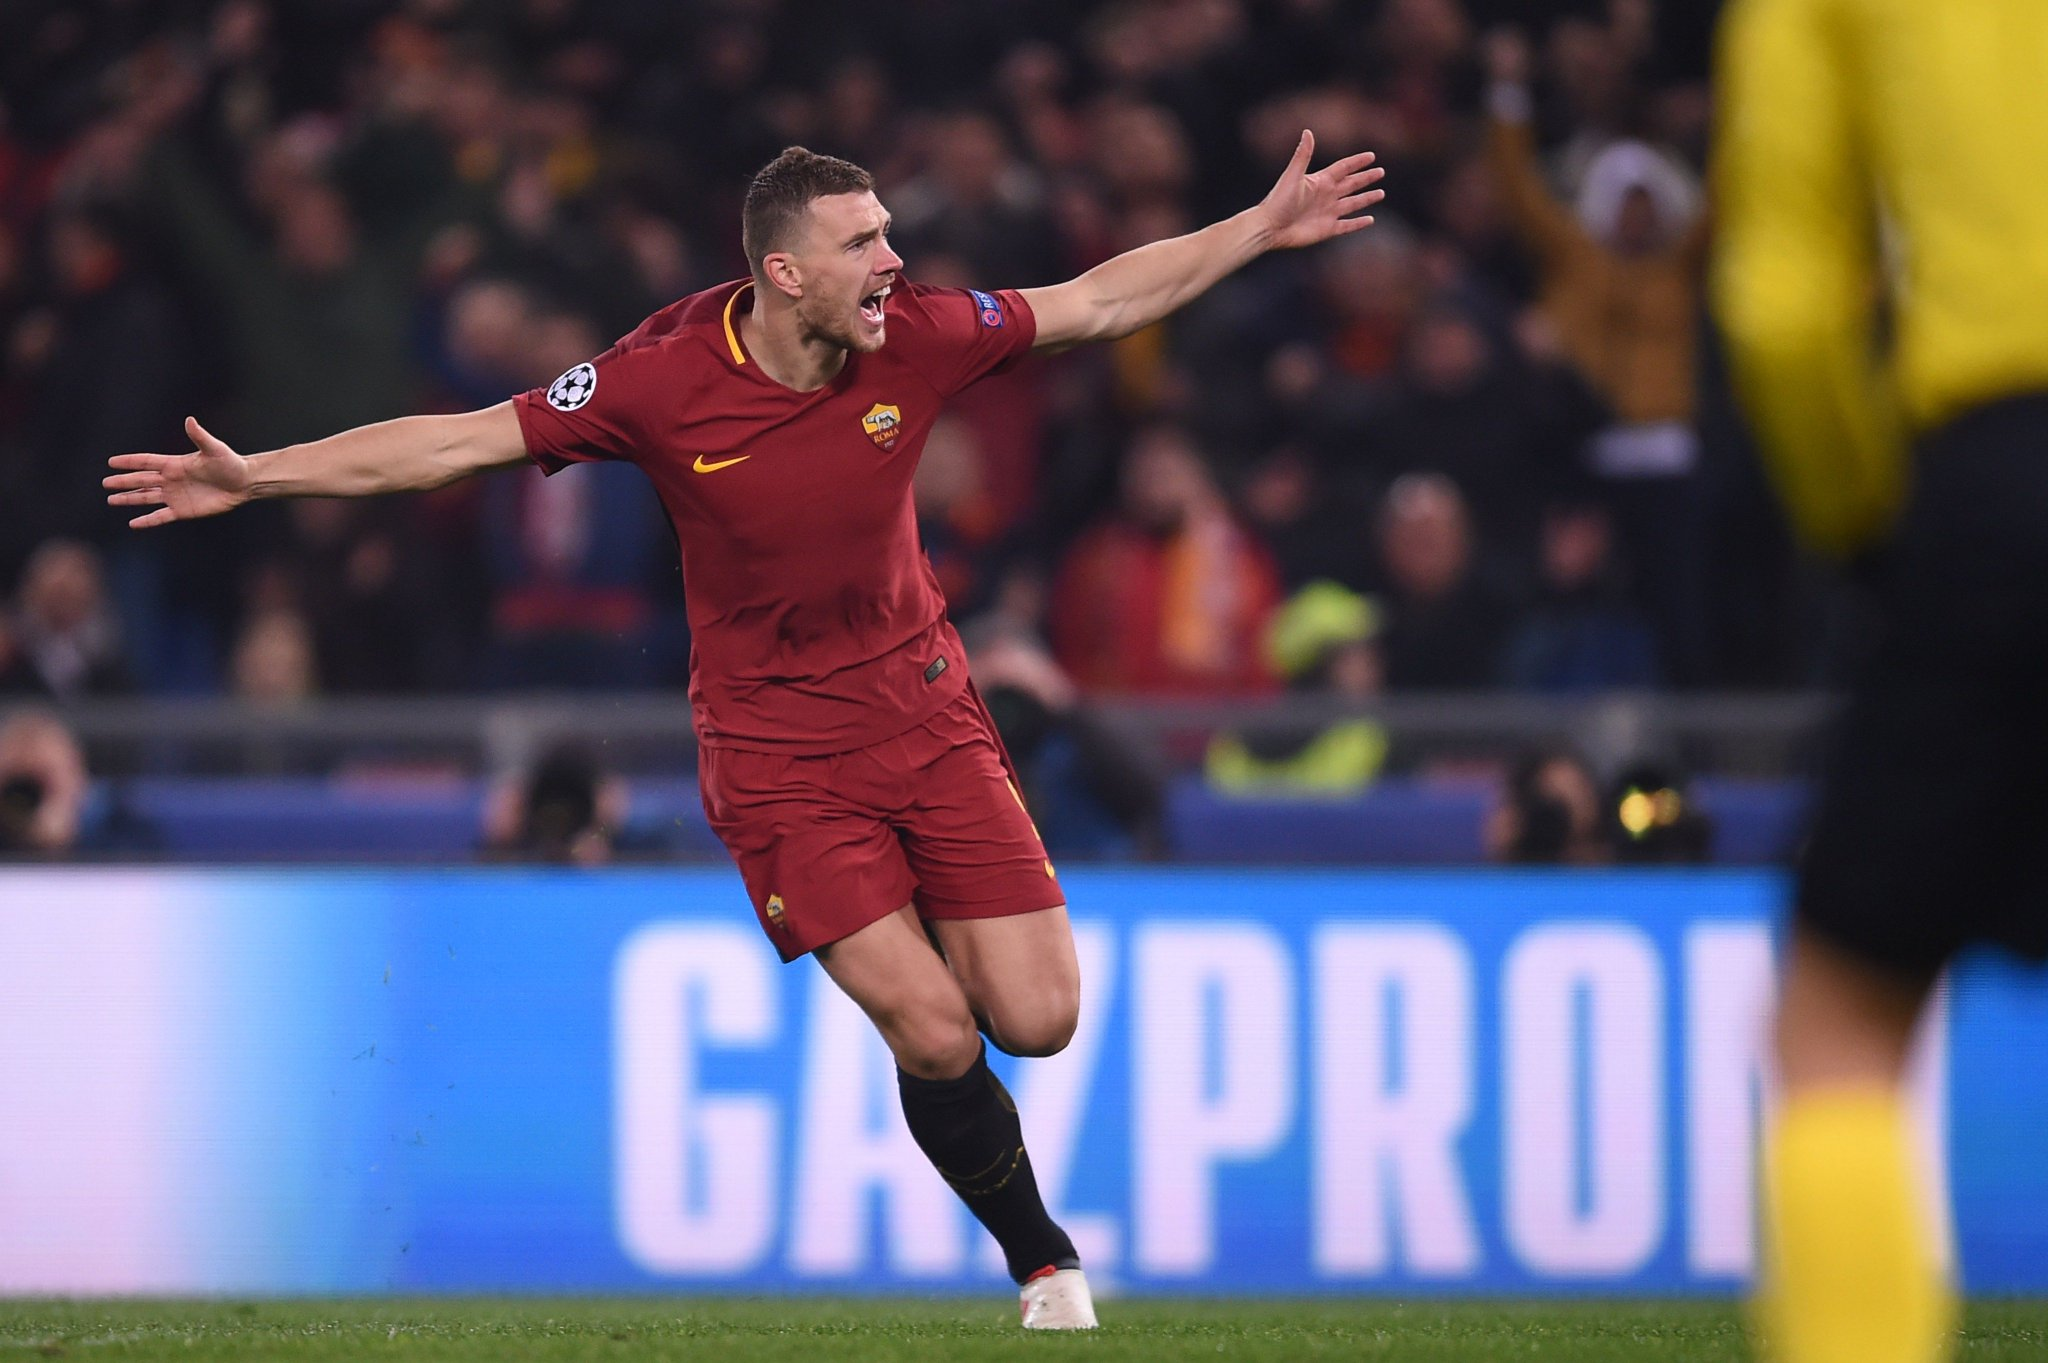 Edin Džeko has been directly involved in 7 goals in 8 #UCL games for Roma this season (4 goals, 3 assists). ������ https://t.co/bxk6b3Wua0